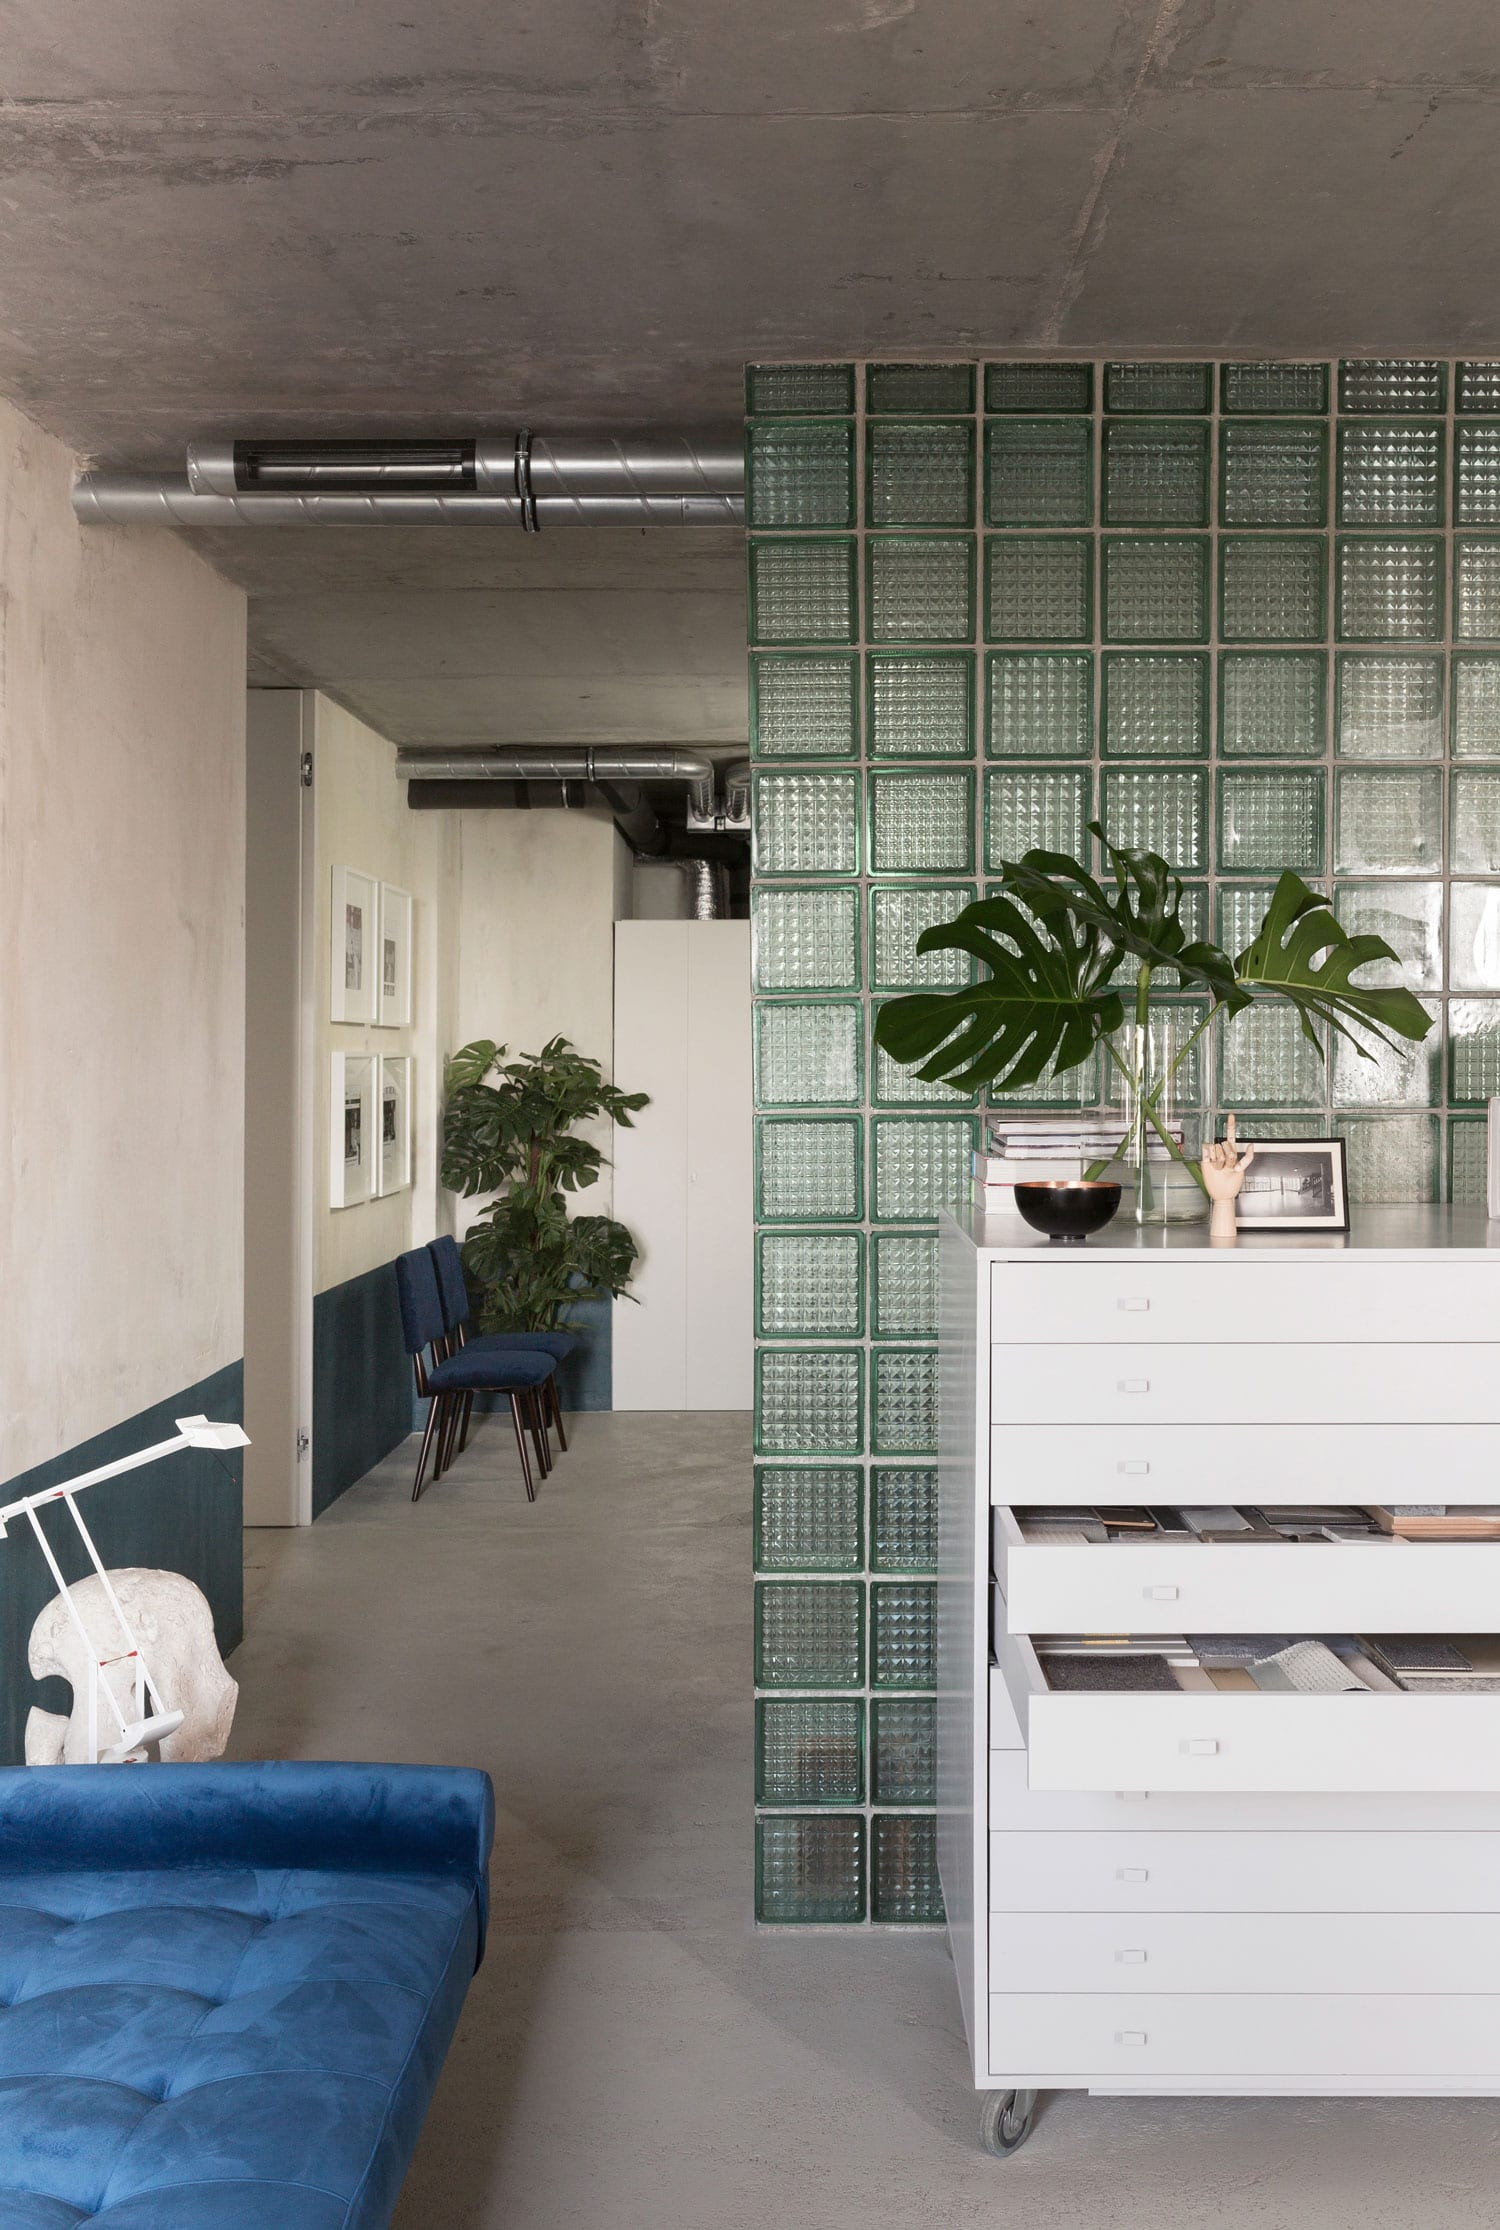 Studio11 Office in Minsk, Belarus | Yellowtrace